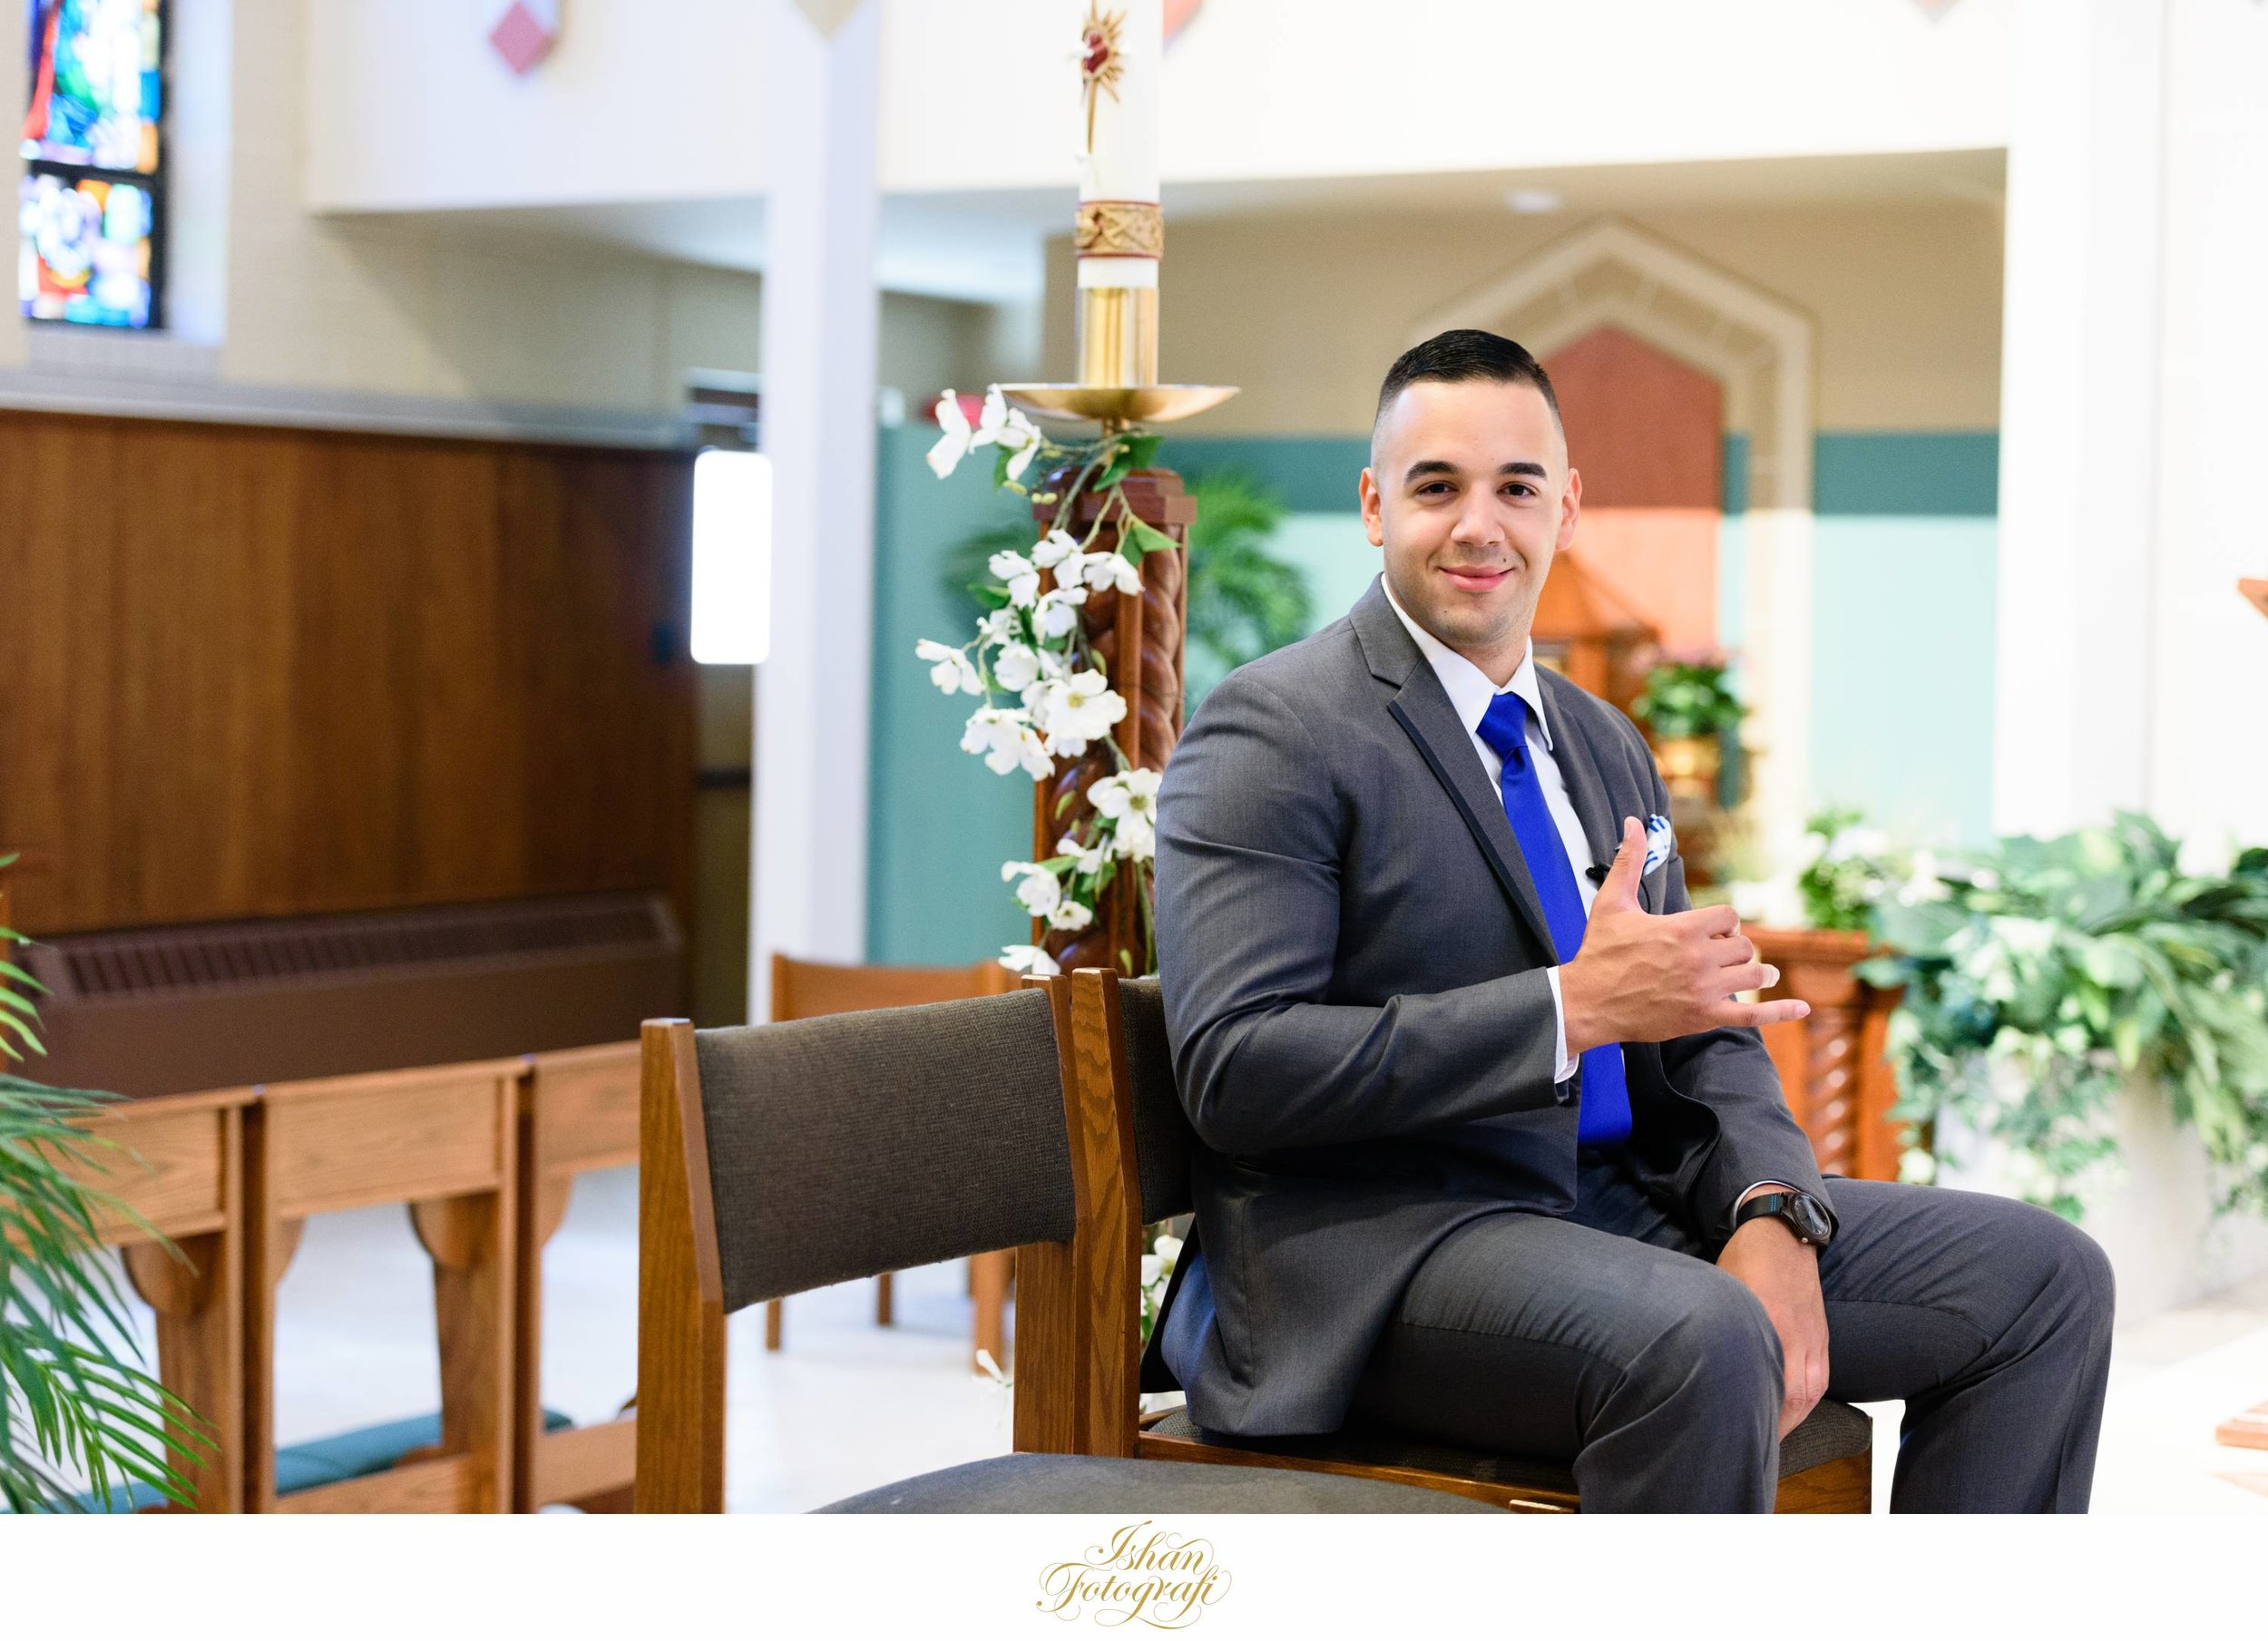 The groom patiently waiting for his bride to arrive. We loved our groom's laid back attitude; he was just in the moment and enjoying it as it unfolded.